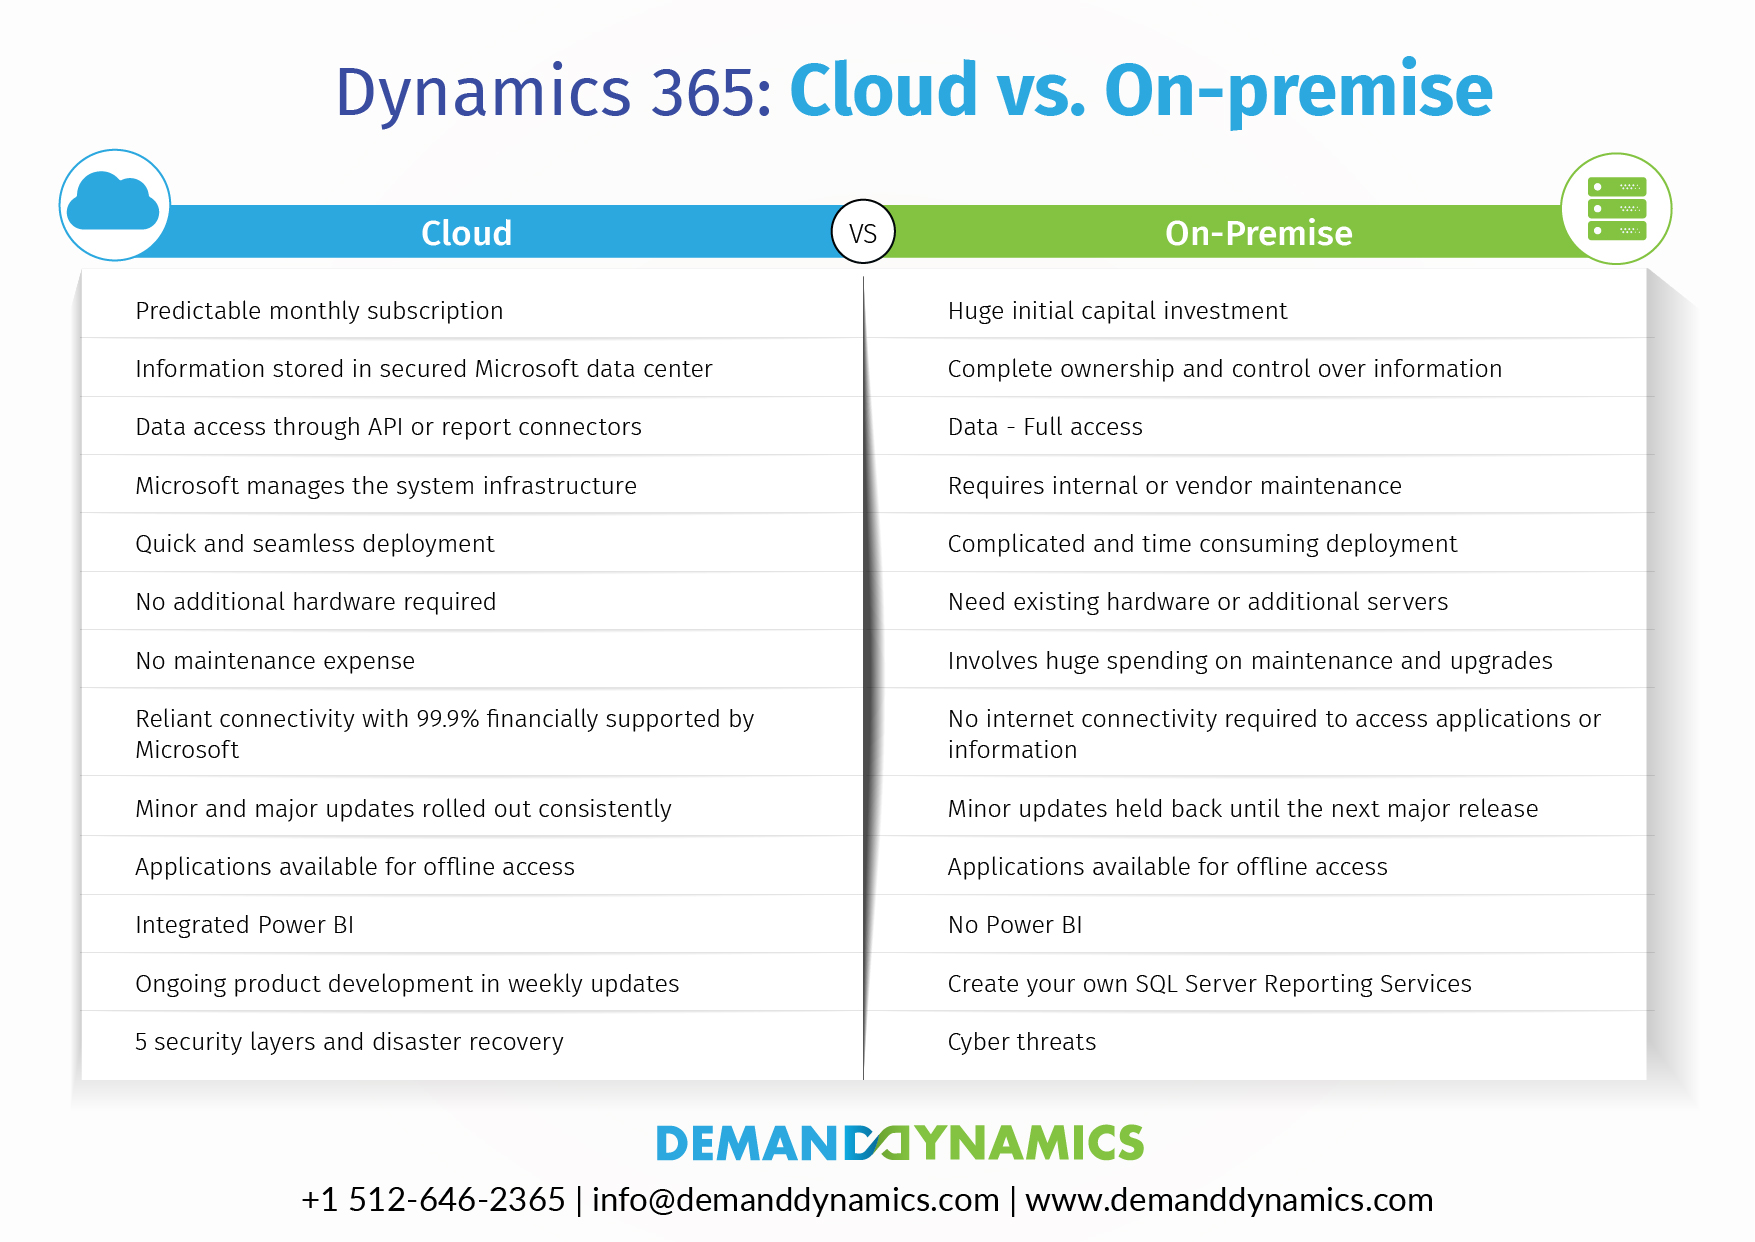 Comparison Chart Between Cloud and On-premise